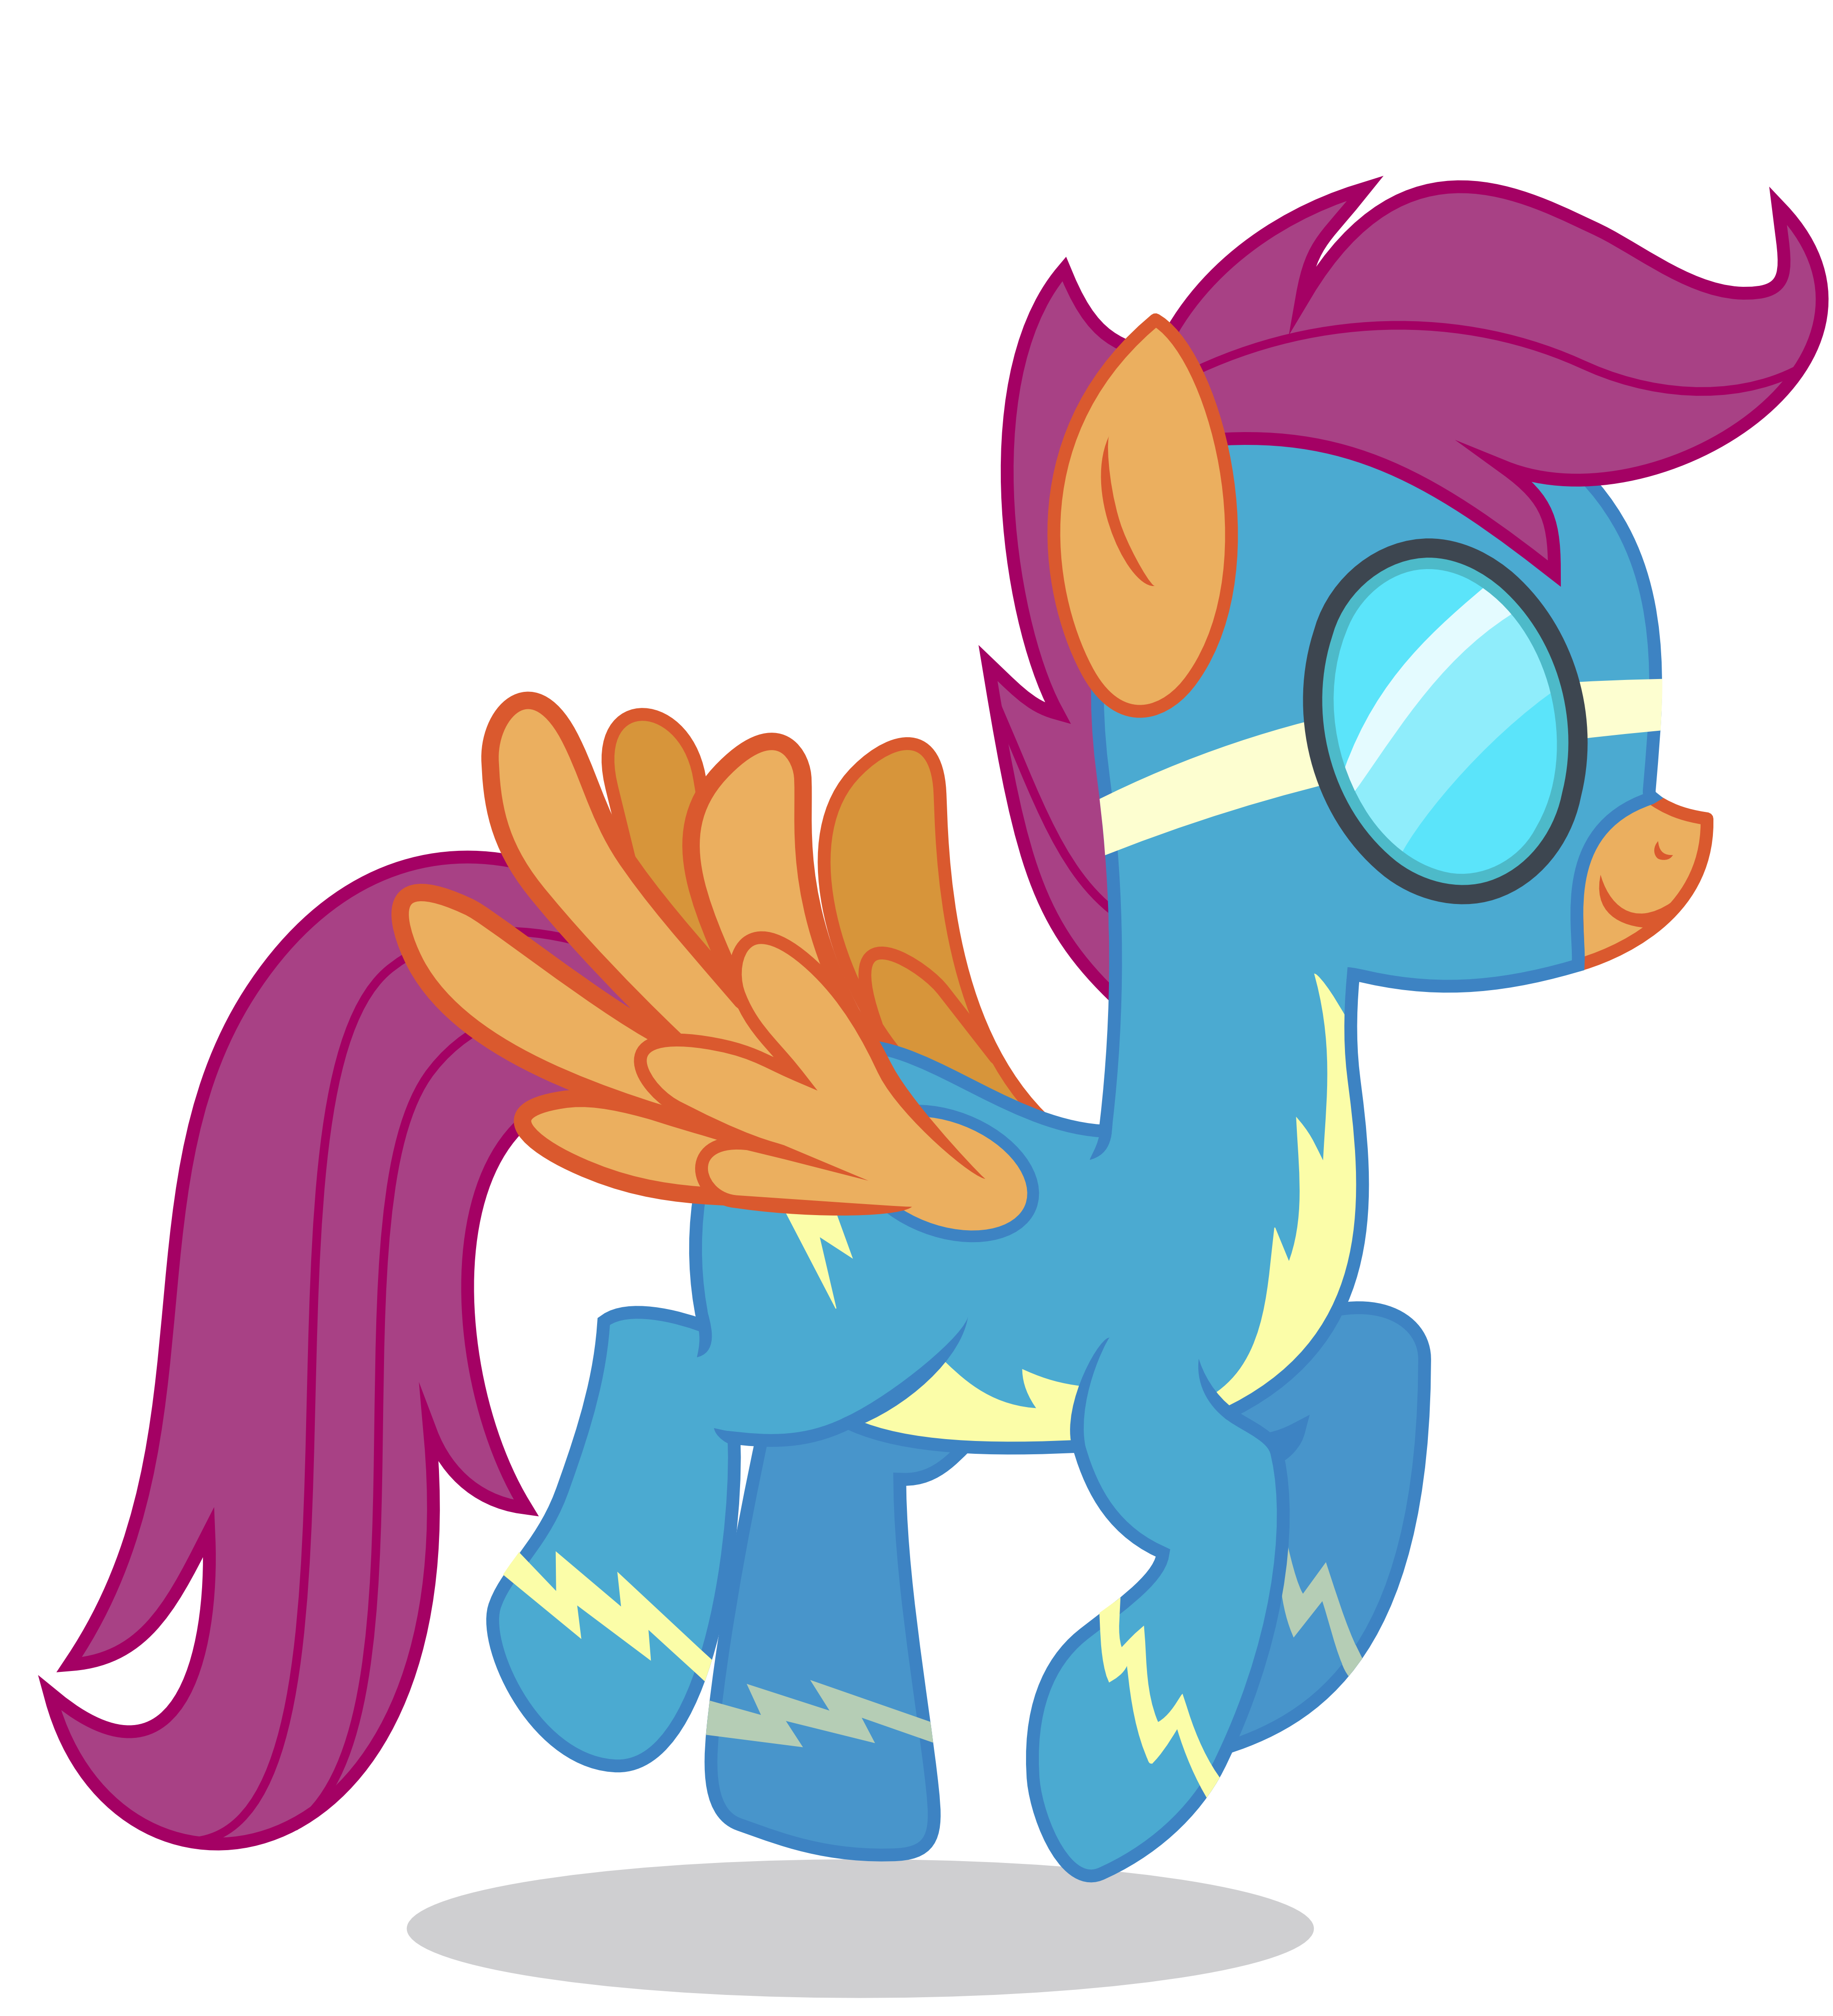 Scootaloo As A Wonderbolt By 90sigma On Deviantart By exelzior, posted 5 years ago pron artist. deviantart